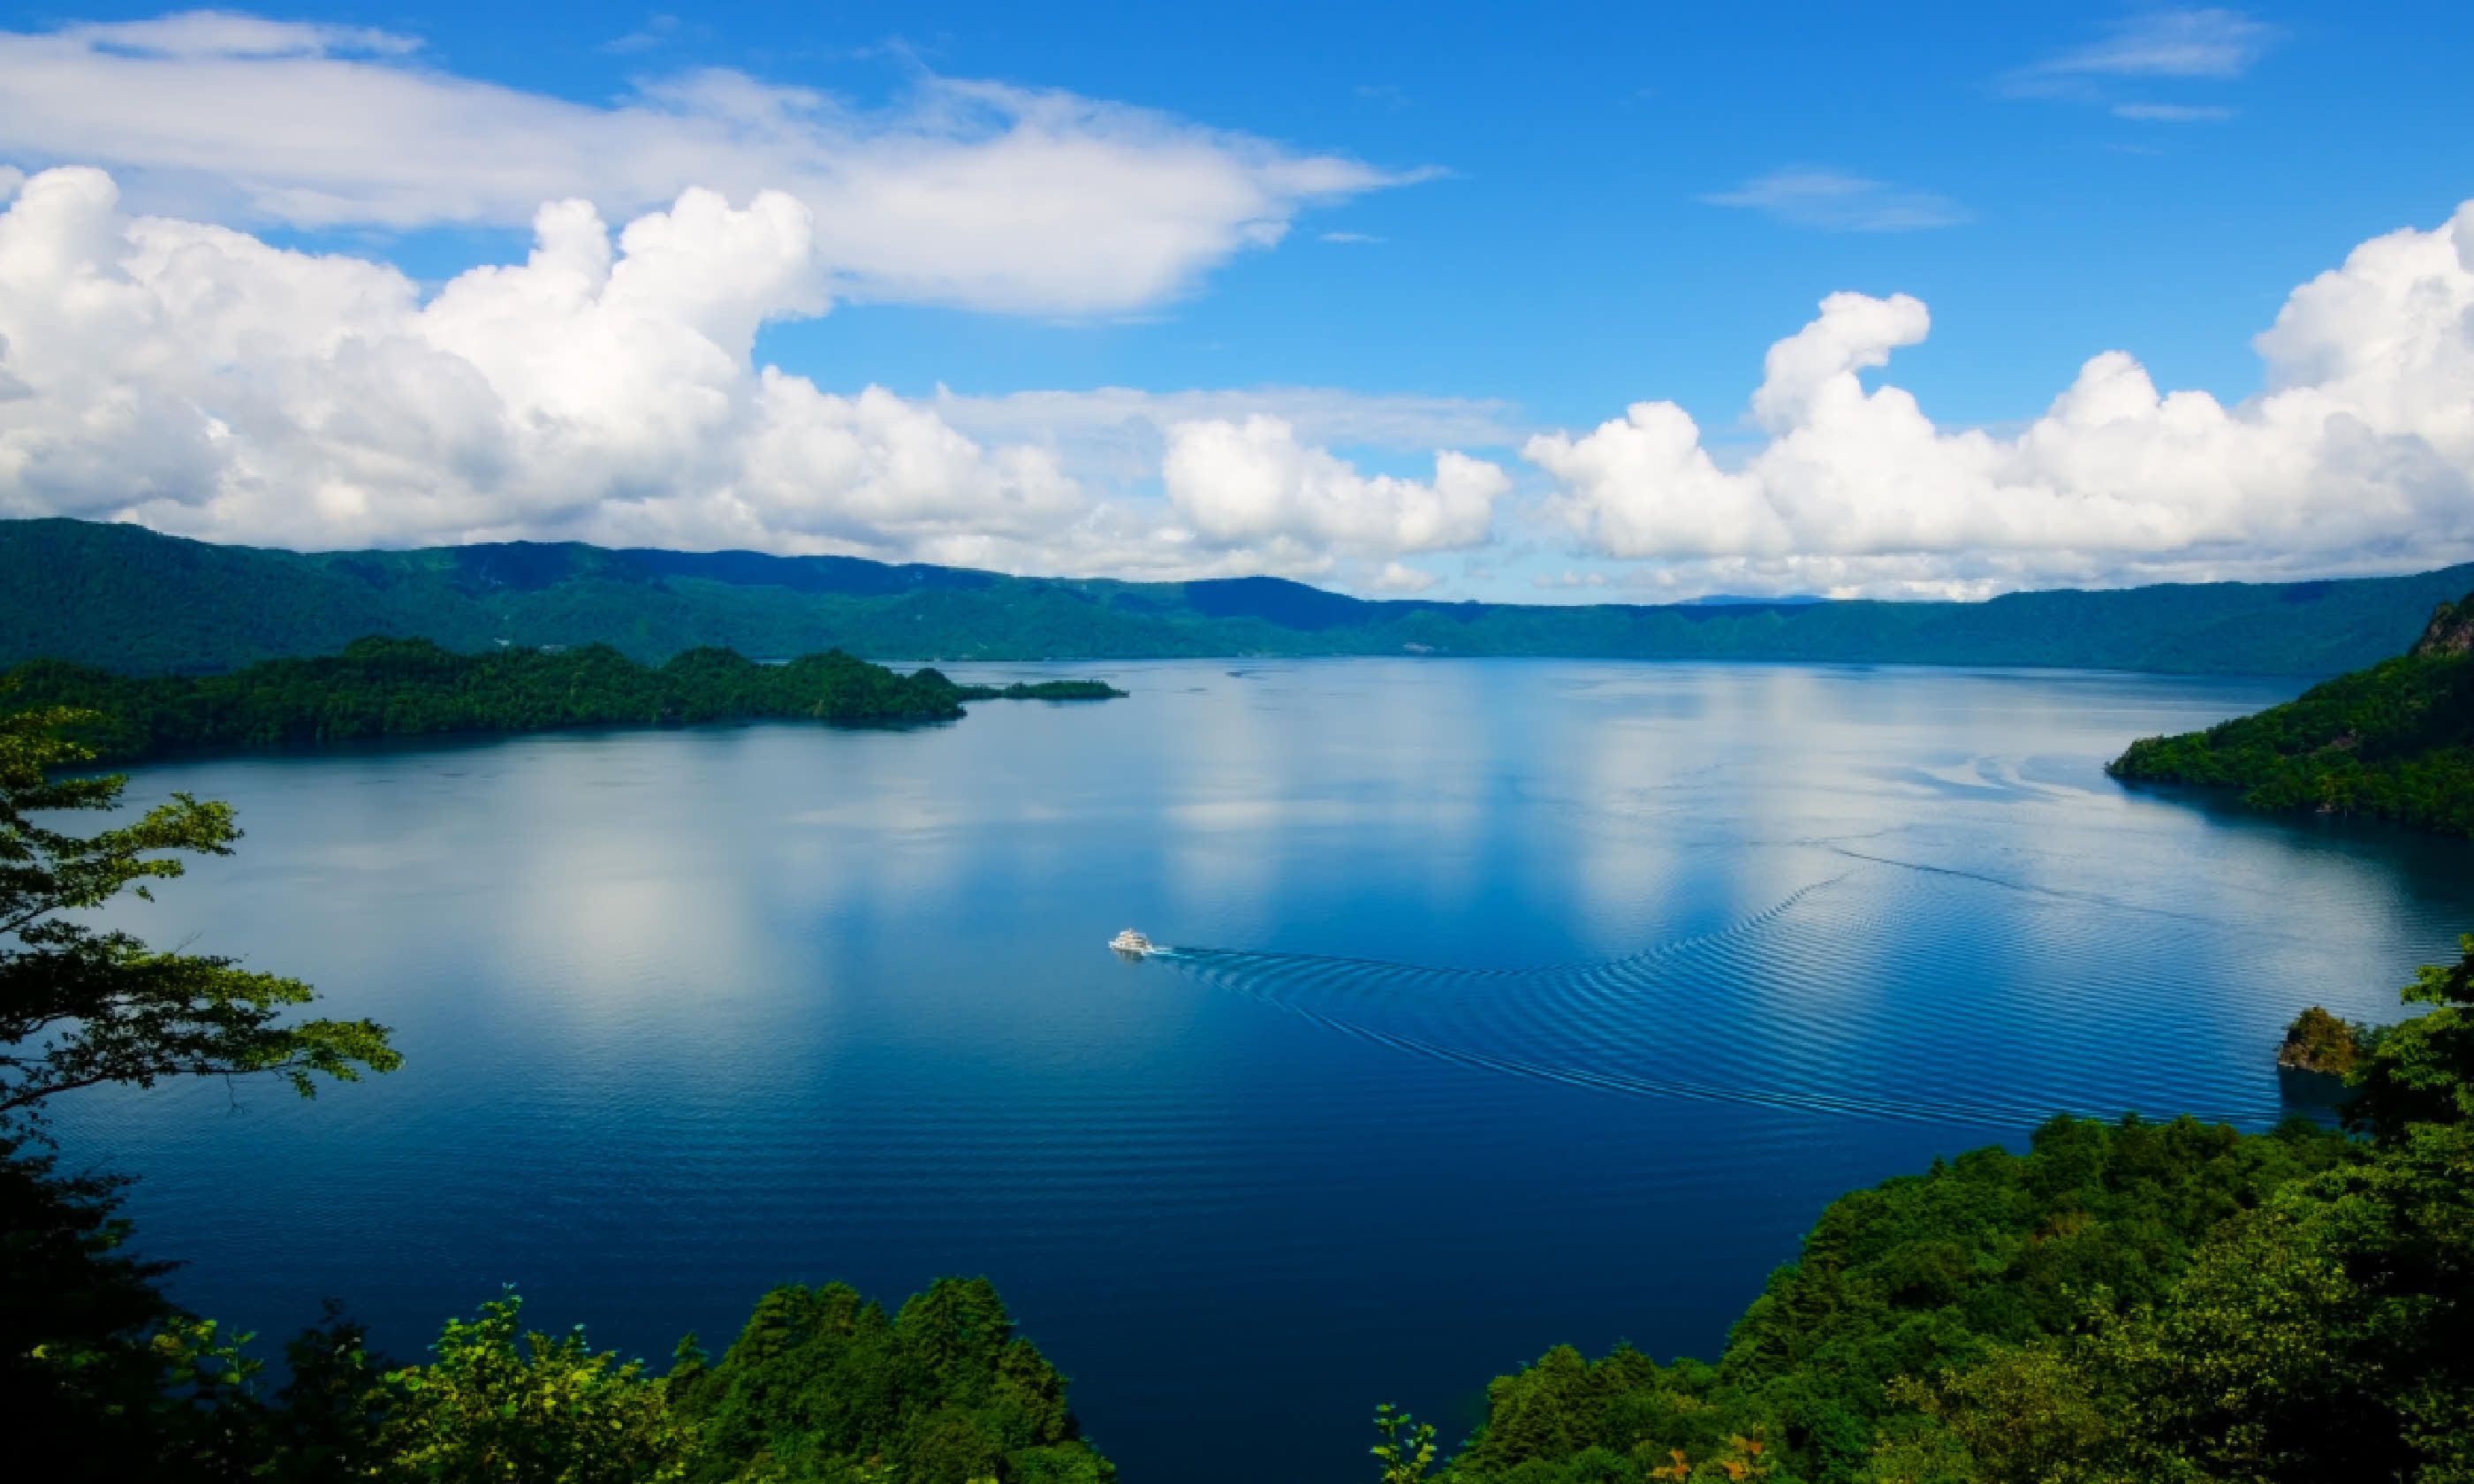 Lake Towada (Shutterstock)